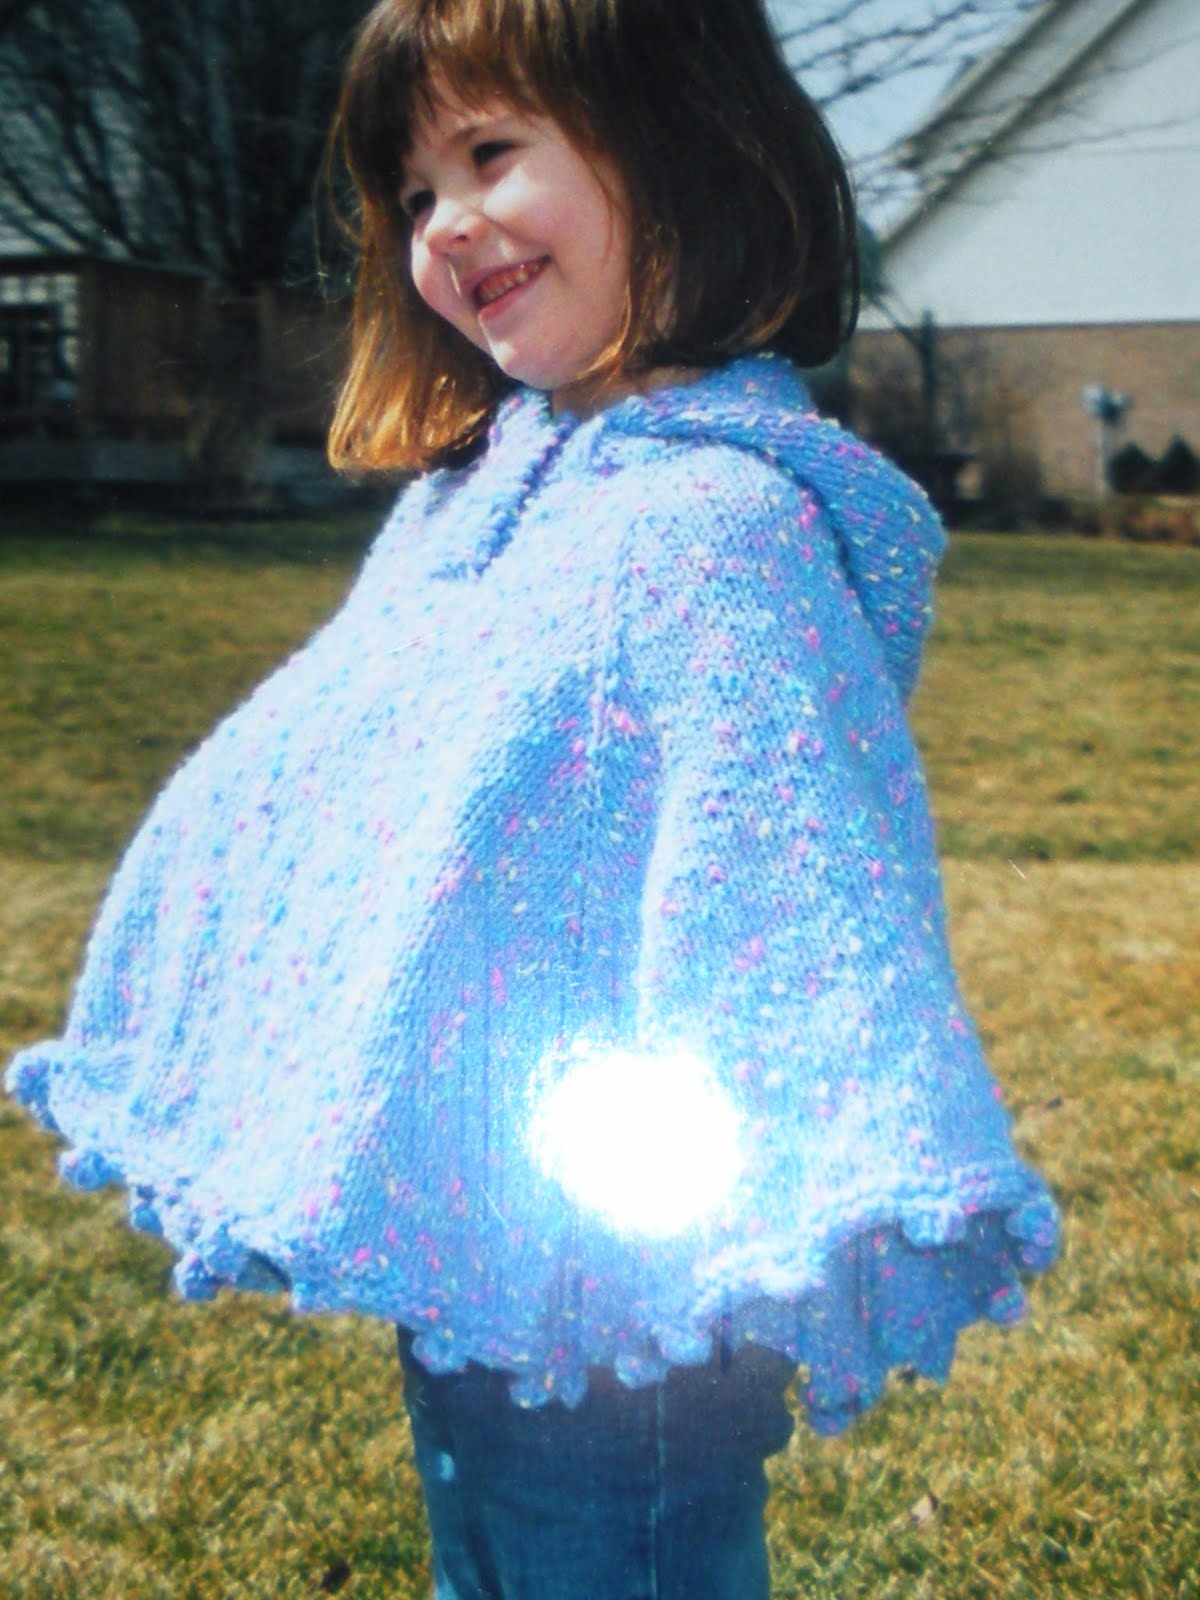 Child S Poncho Knitting Pattern : Warm thoughts child s hooded poncho